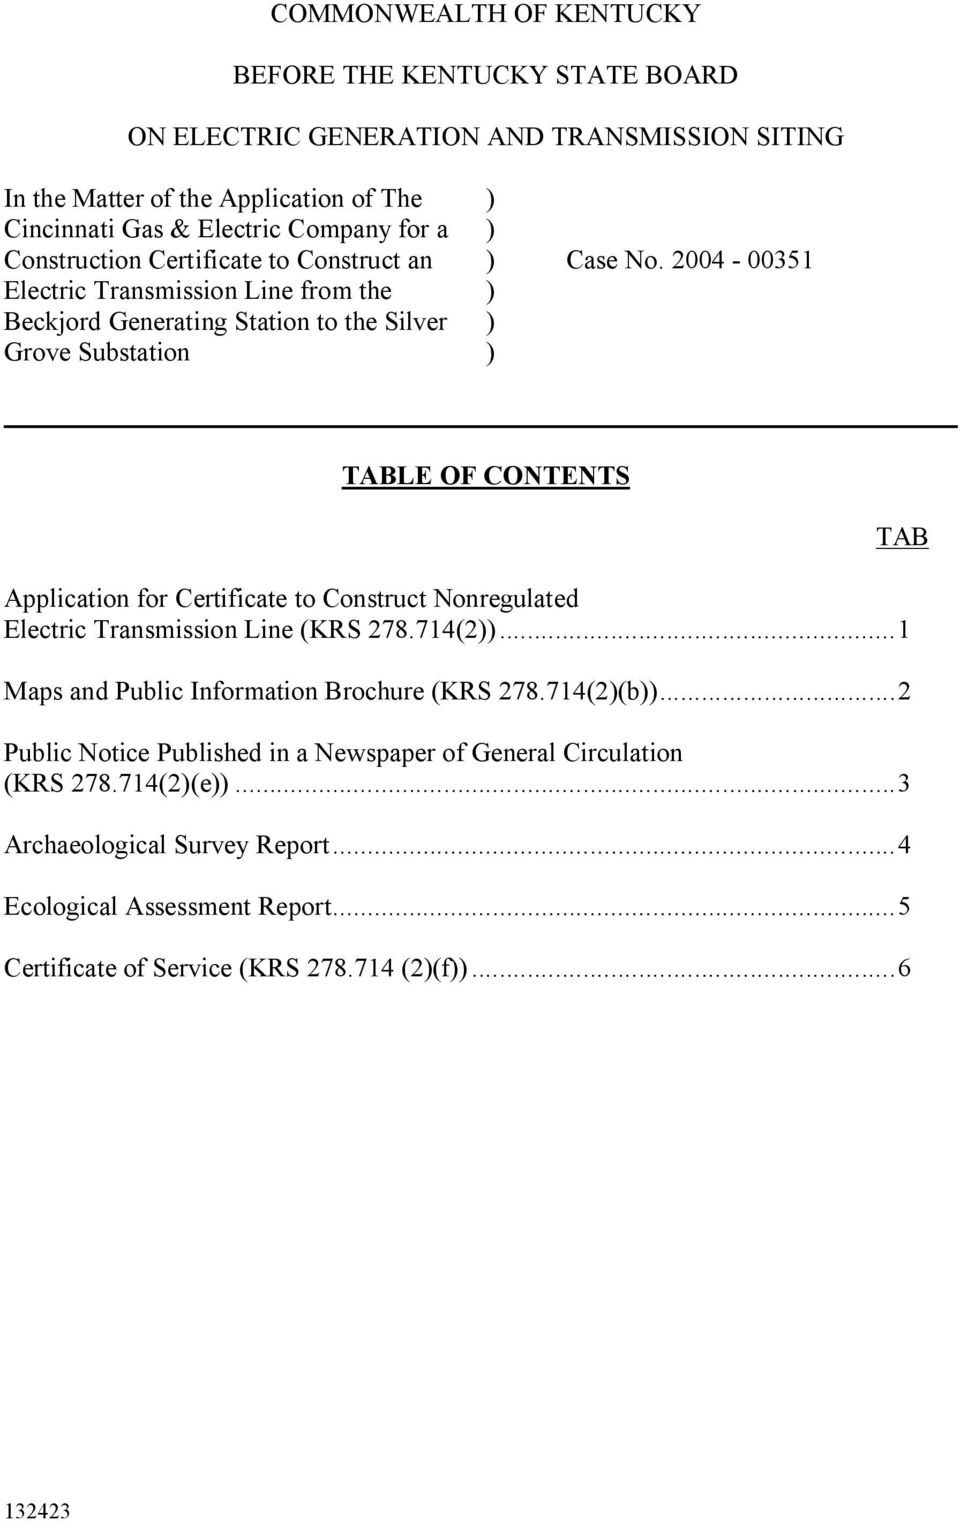 2004-00351 Electric Transmission Line from the ) Beckjord Generating Station to the Silver ) Grove Substation ) TABLE OF CONTENTS Application for Certificate to Construct Nonregulated